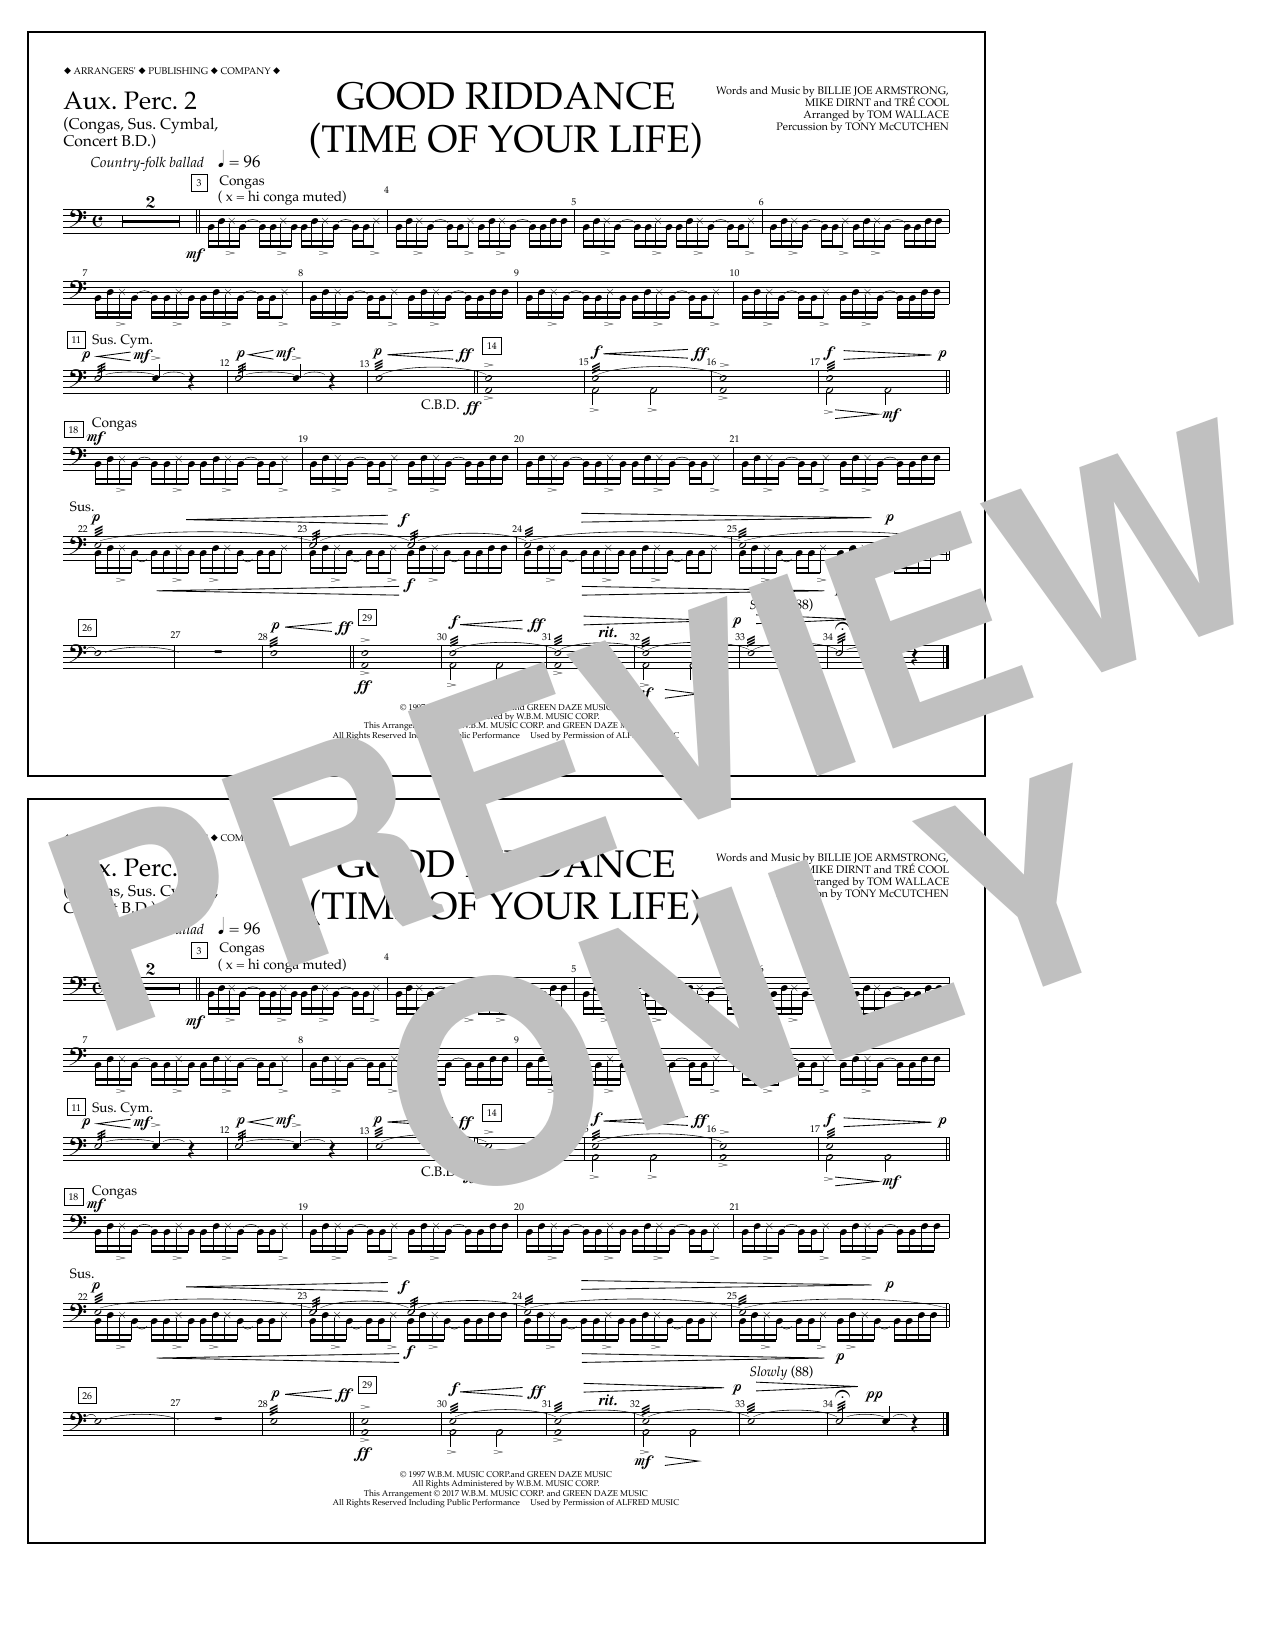 Good Riddance (Time of Your Life) - Aux. Perc. 2 Sheet Music